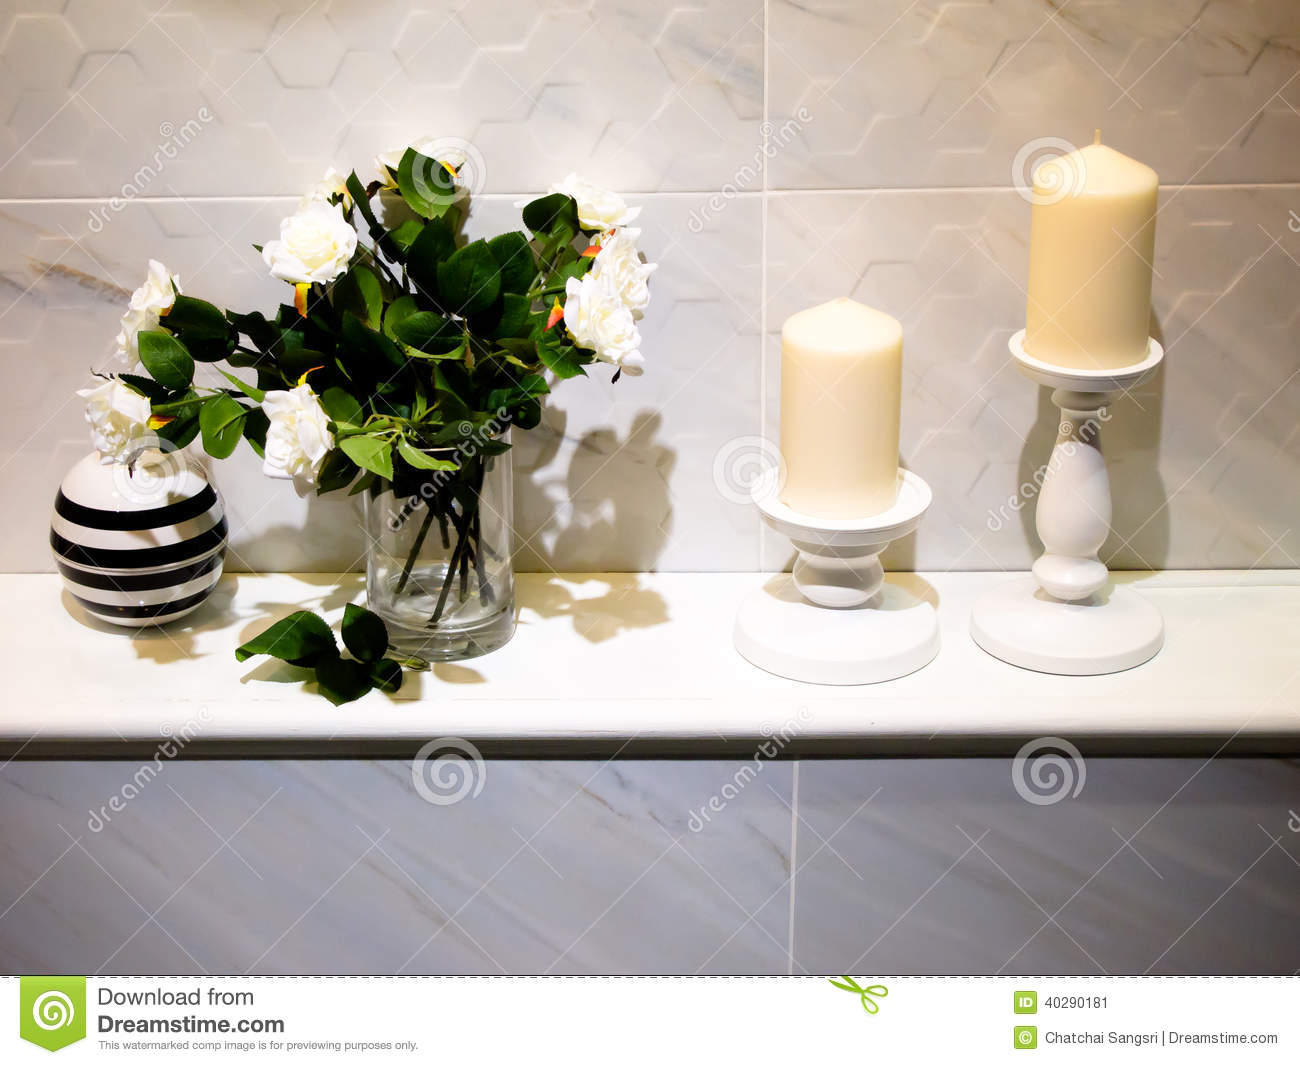 Bathroom decor stock image image of candle massage for Bathroom decoration pic